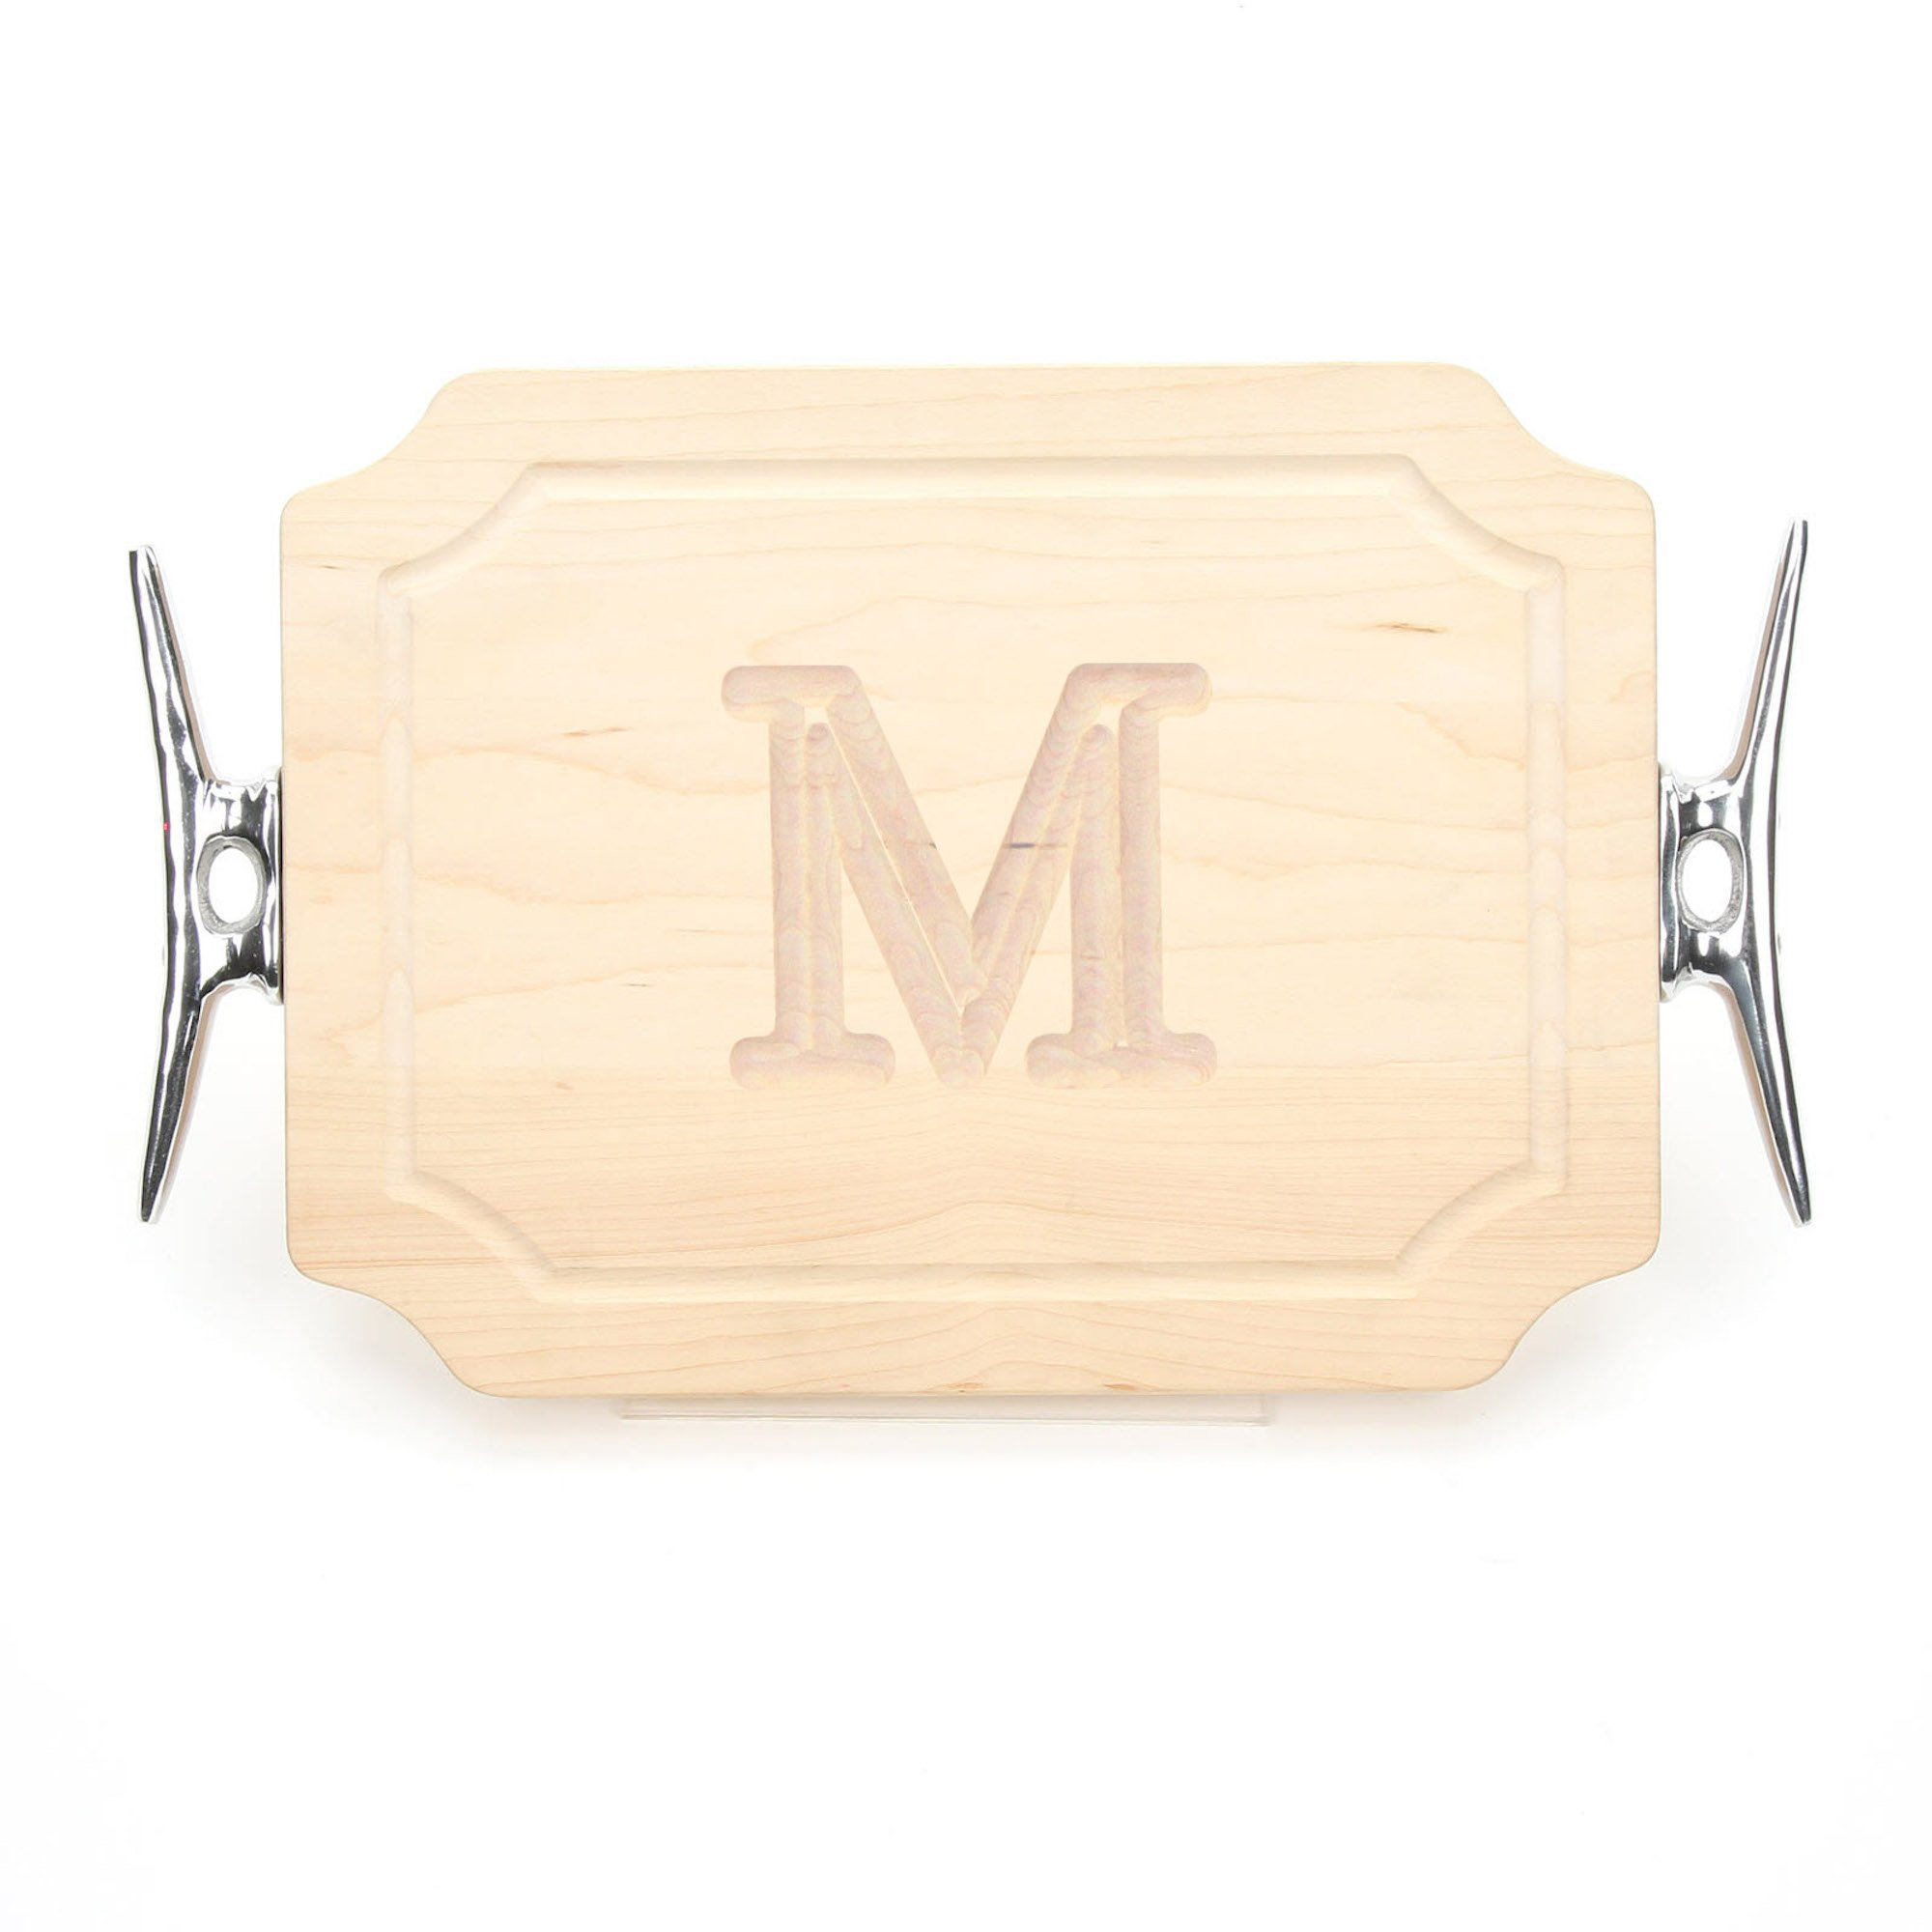 BigWood Boards 300-SCLT-M Bar/Cheese Board with Boat Cleat Cast Aluminum Handle with Scalloped Corners, 9-Inch by 12-Inch by 0.75-Inch, Monogrammed''M'', Maple